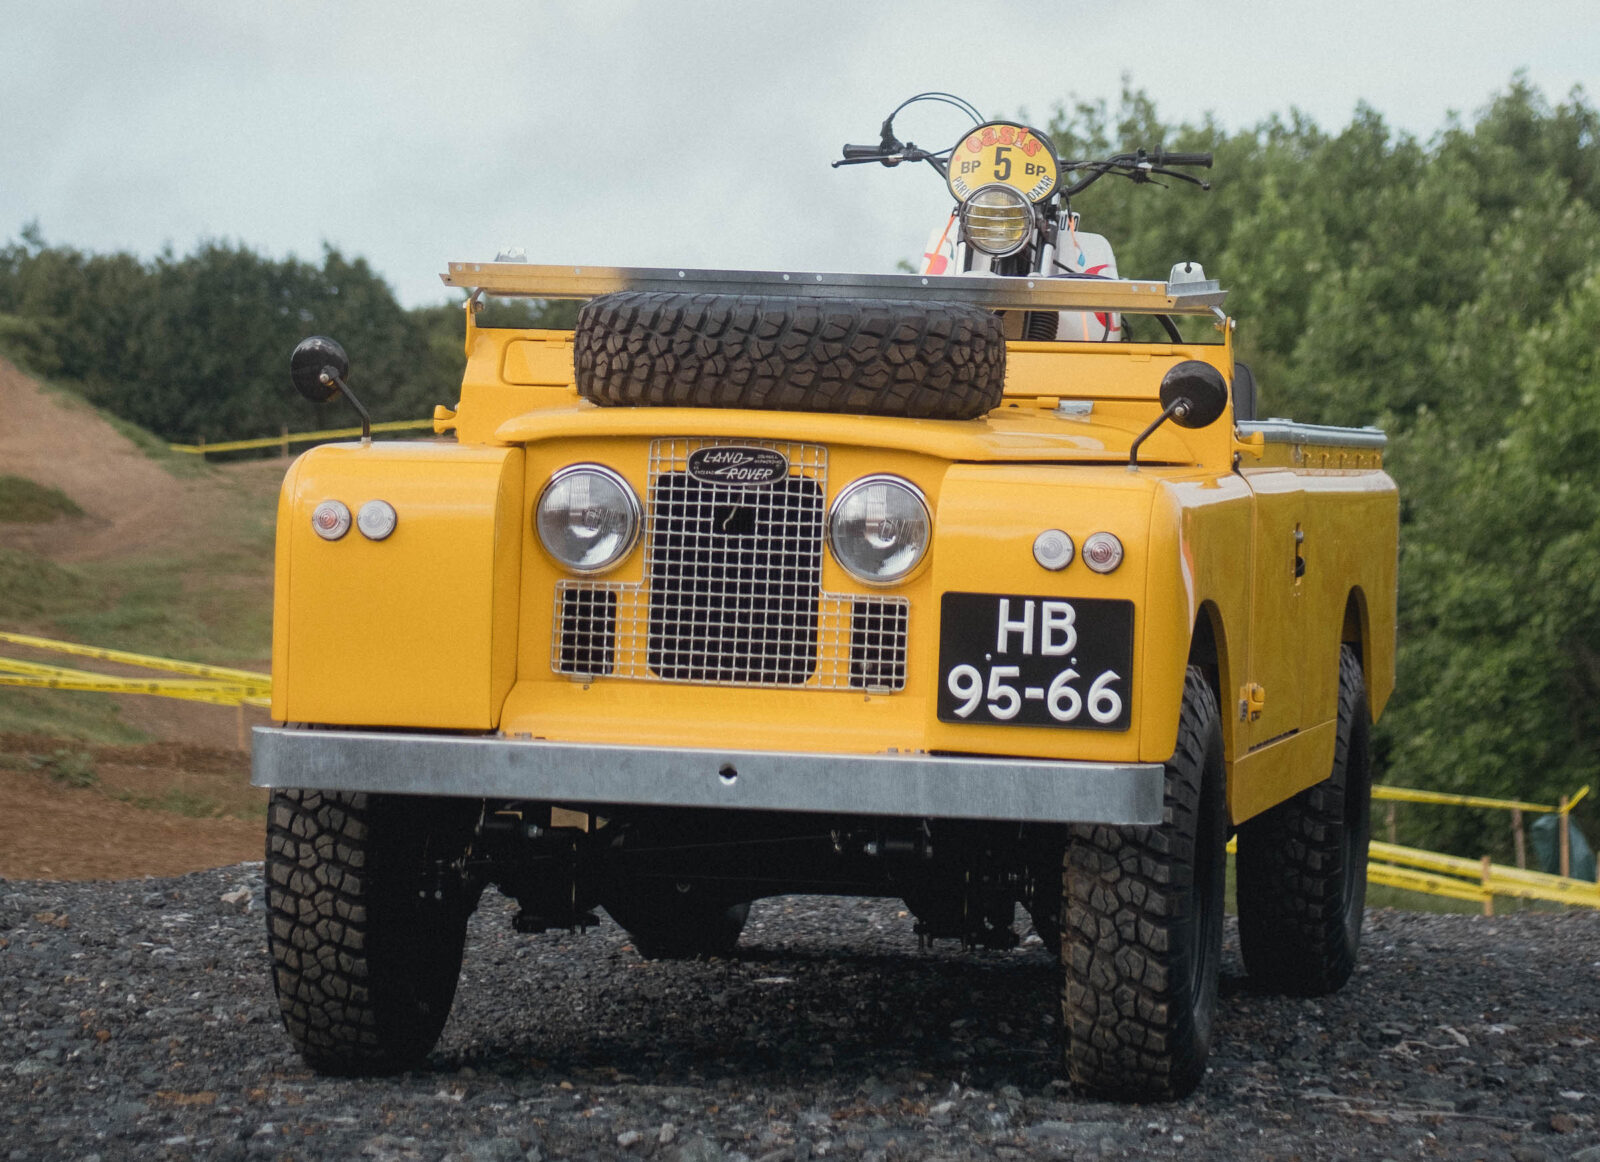 A Restored Land Rover Series 2A LWB - The Perfect 4x4 Motorcycle Hauler?